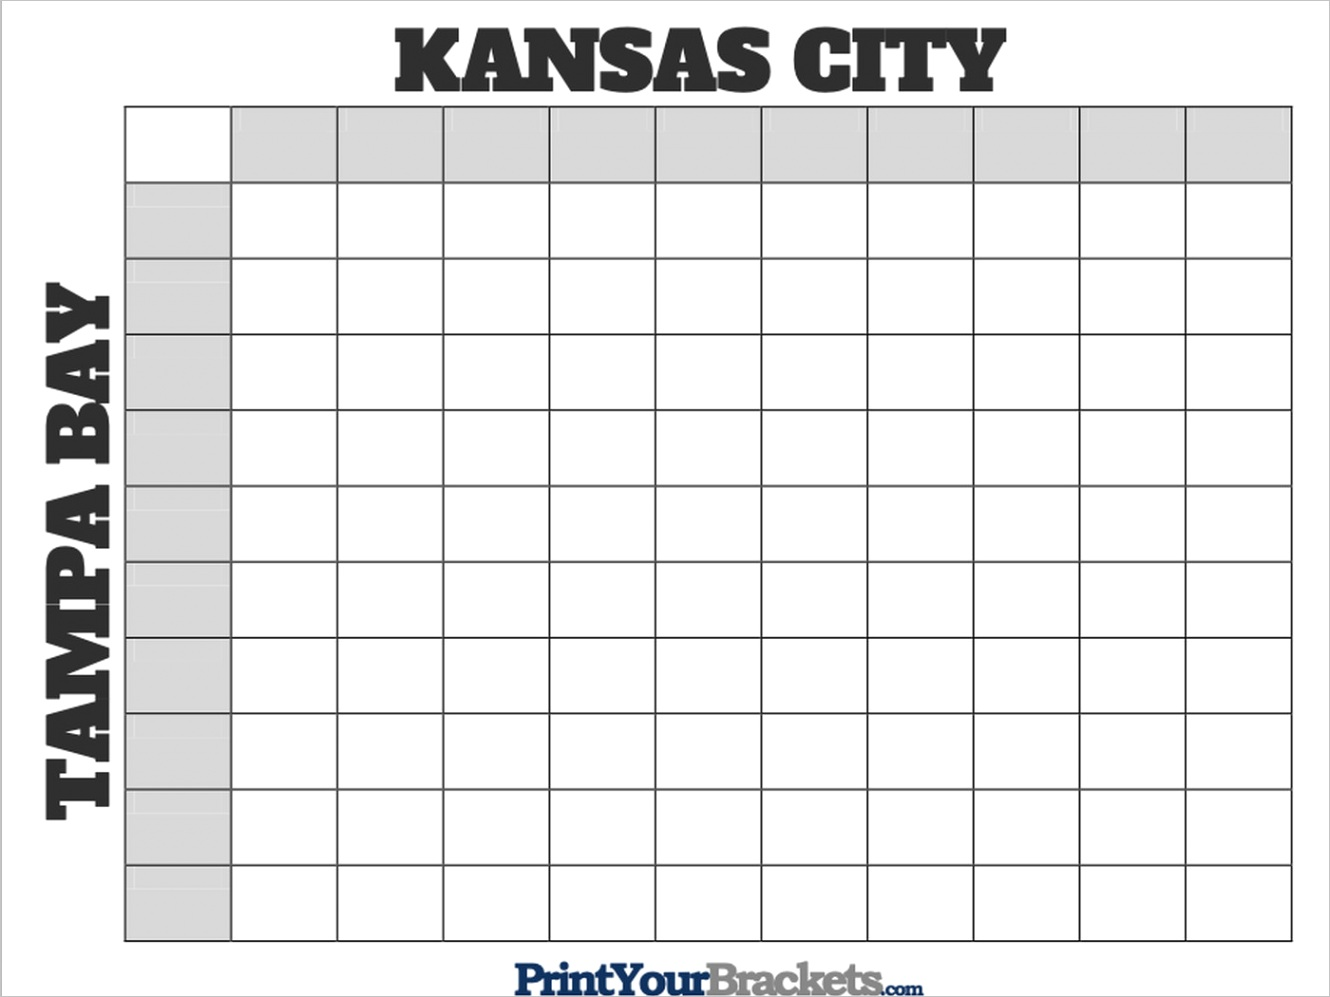 super bowl squares template how to play online